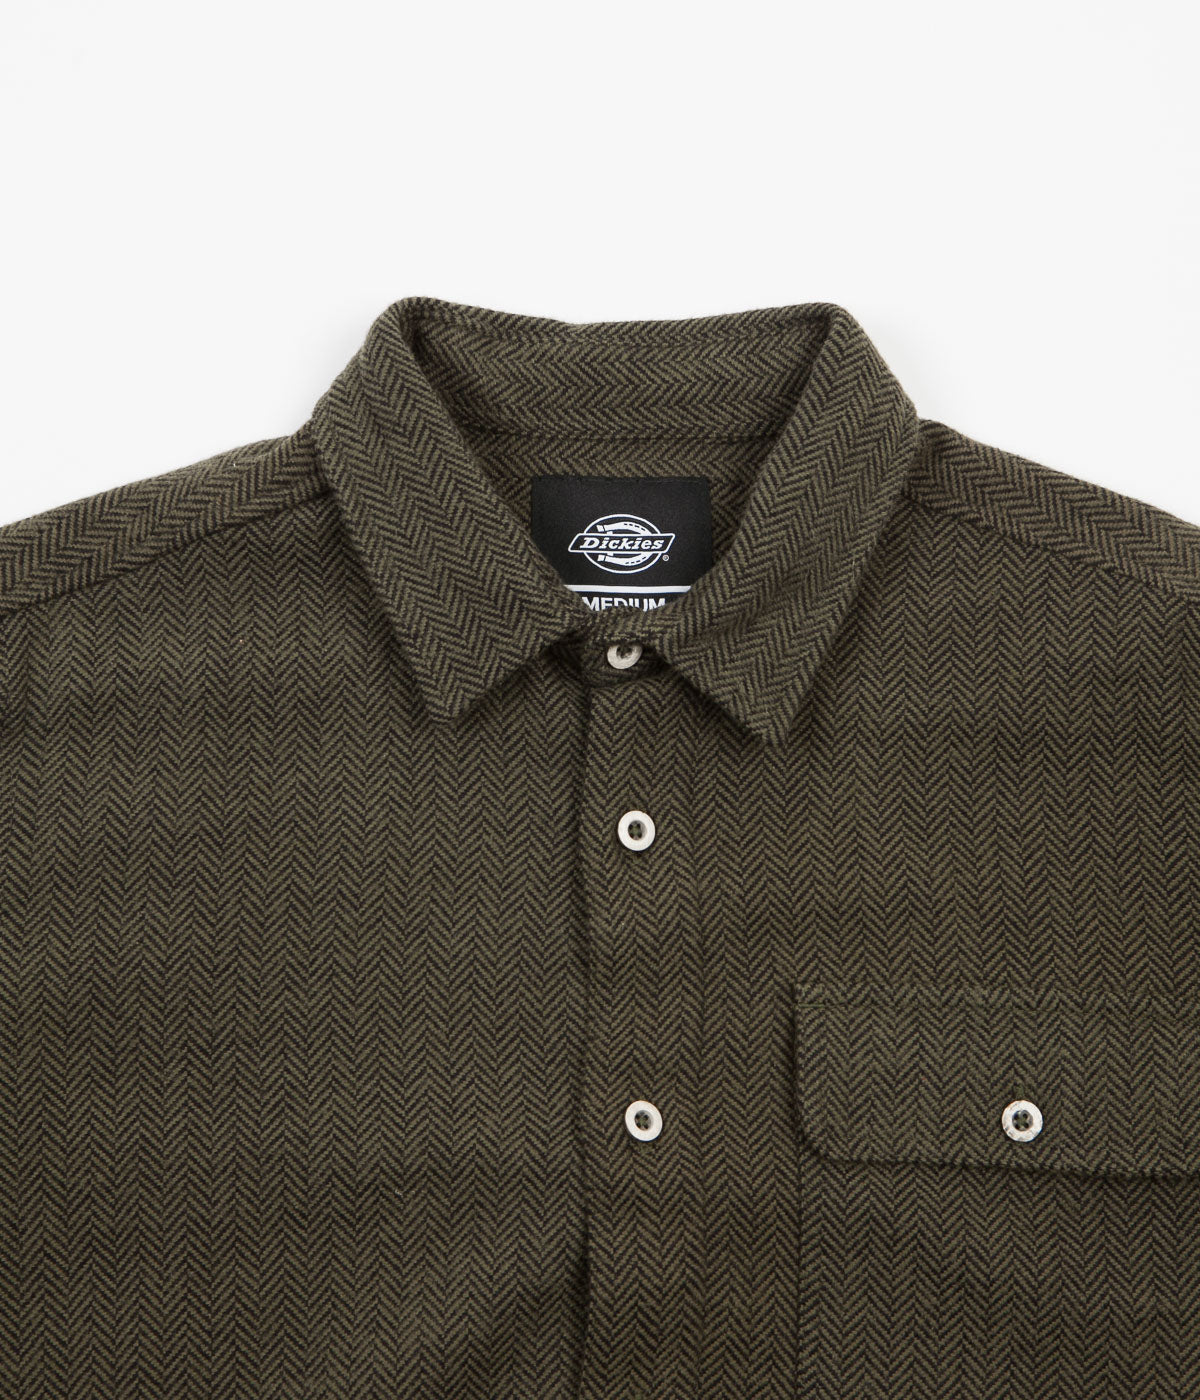 Dickies Lewisburg Shirt - Olive Green